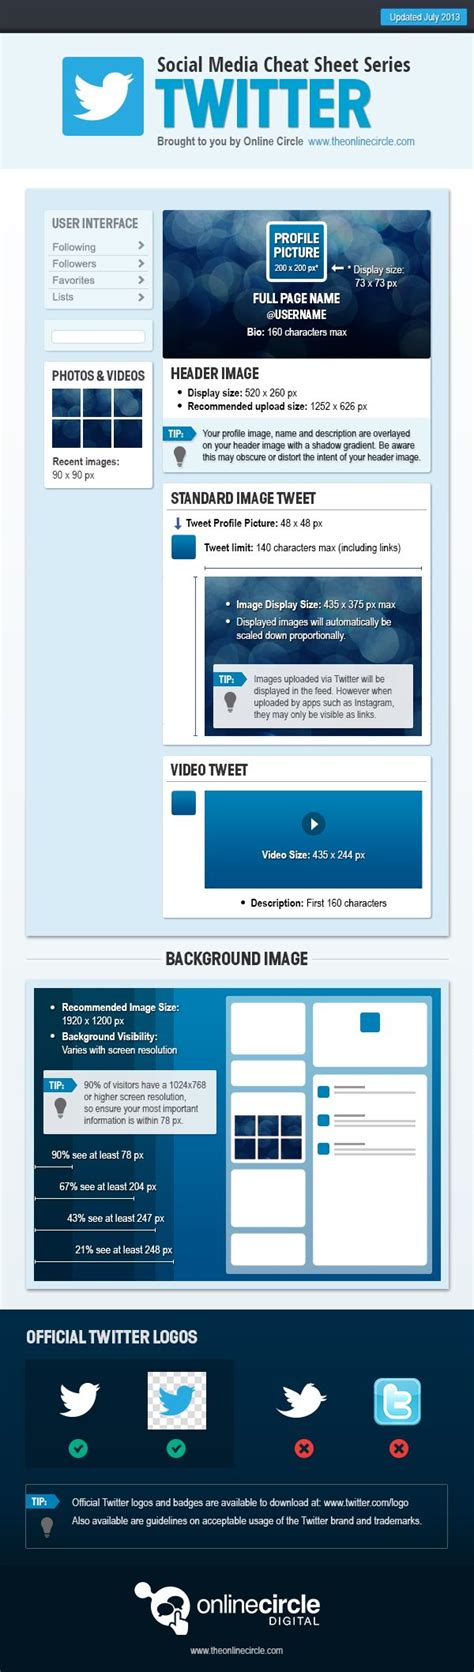 edmodo answers hack 17 best images about cheat sheets on pinterest